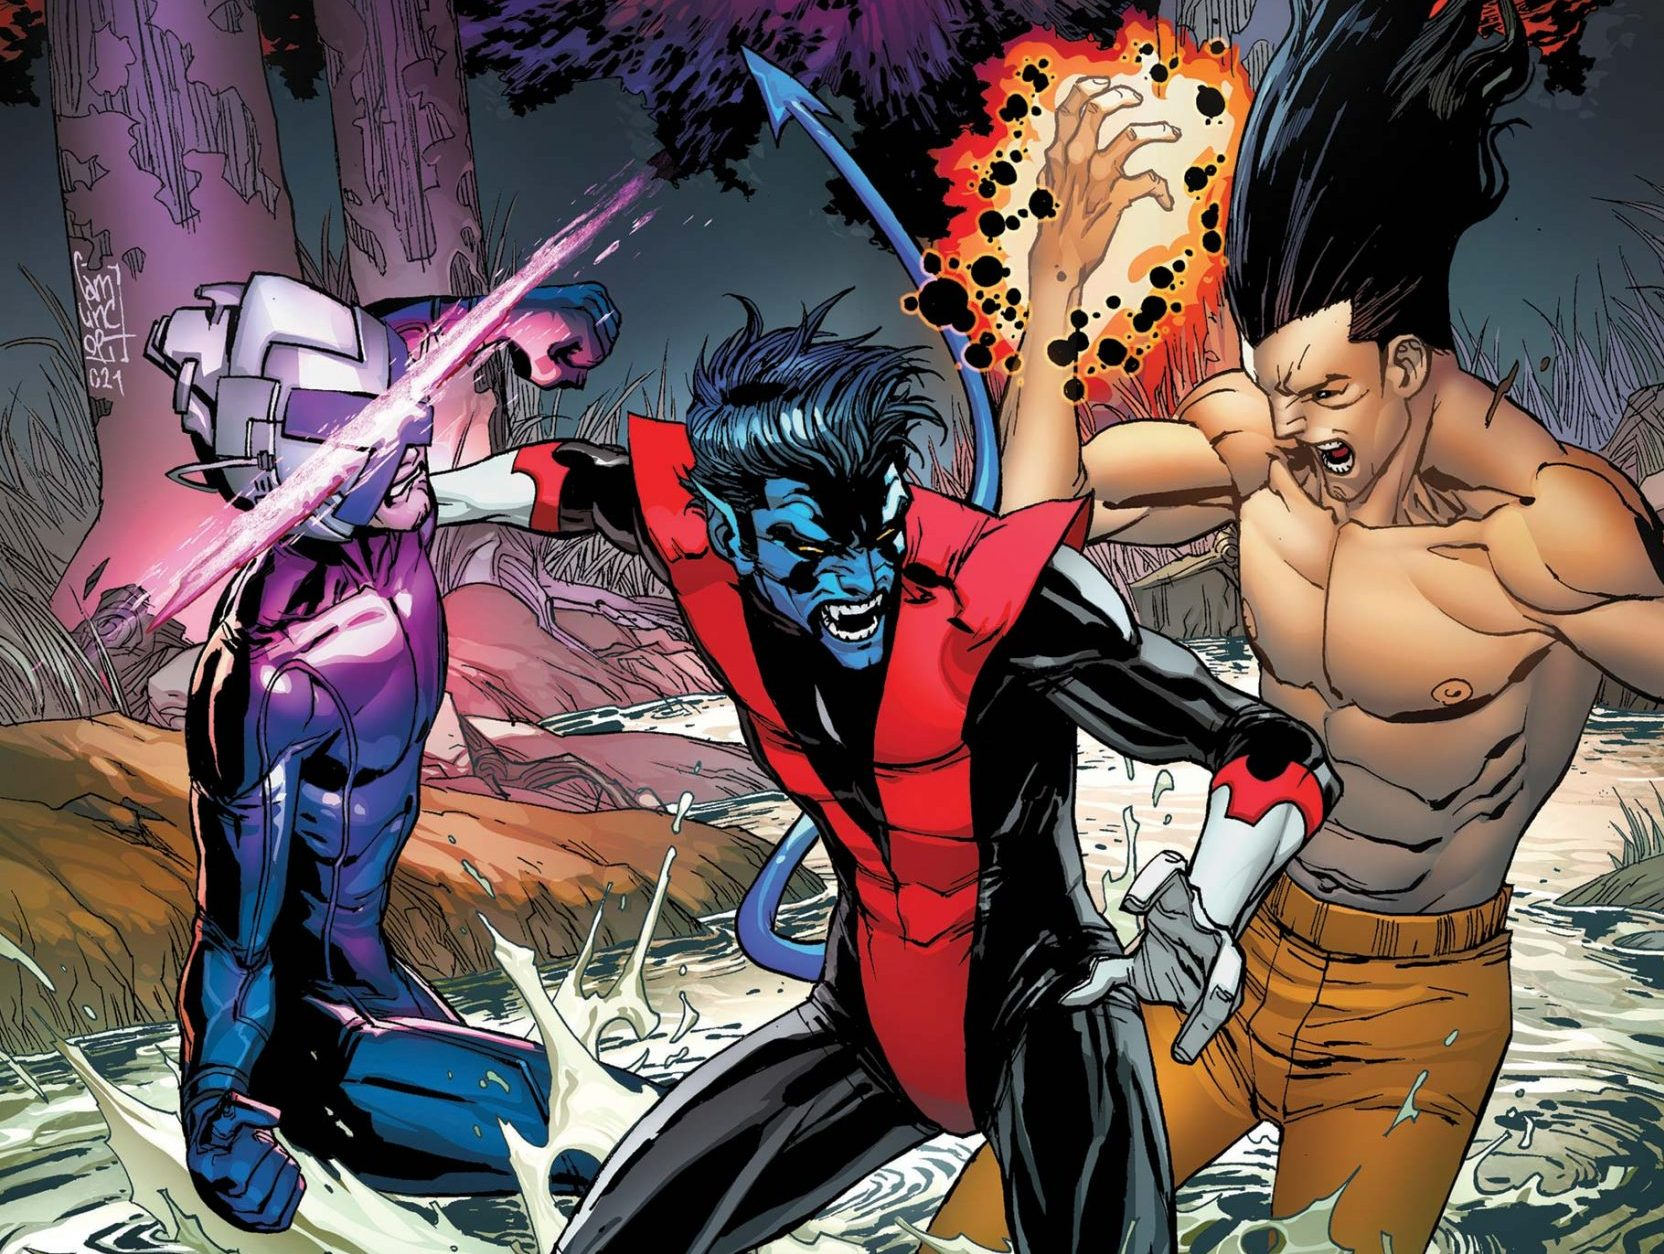 Nightcrawler tries to break up a fight between Professor X and his son Legion.